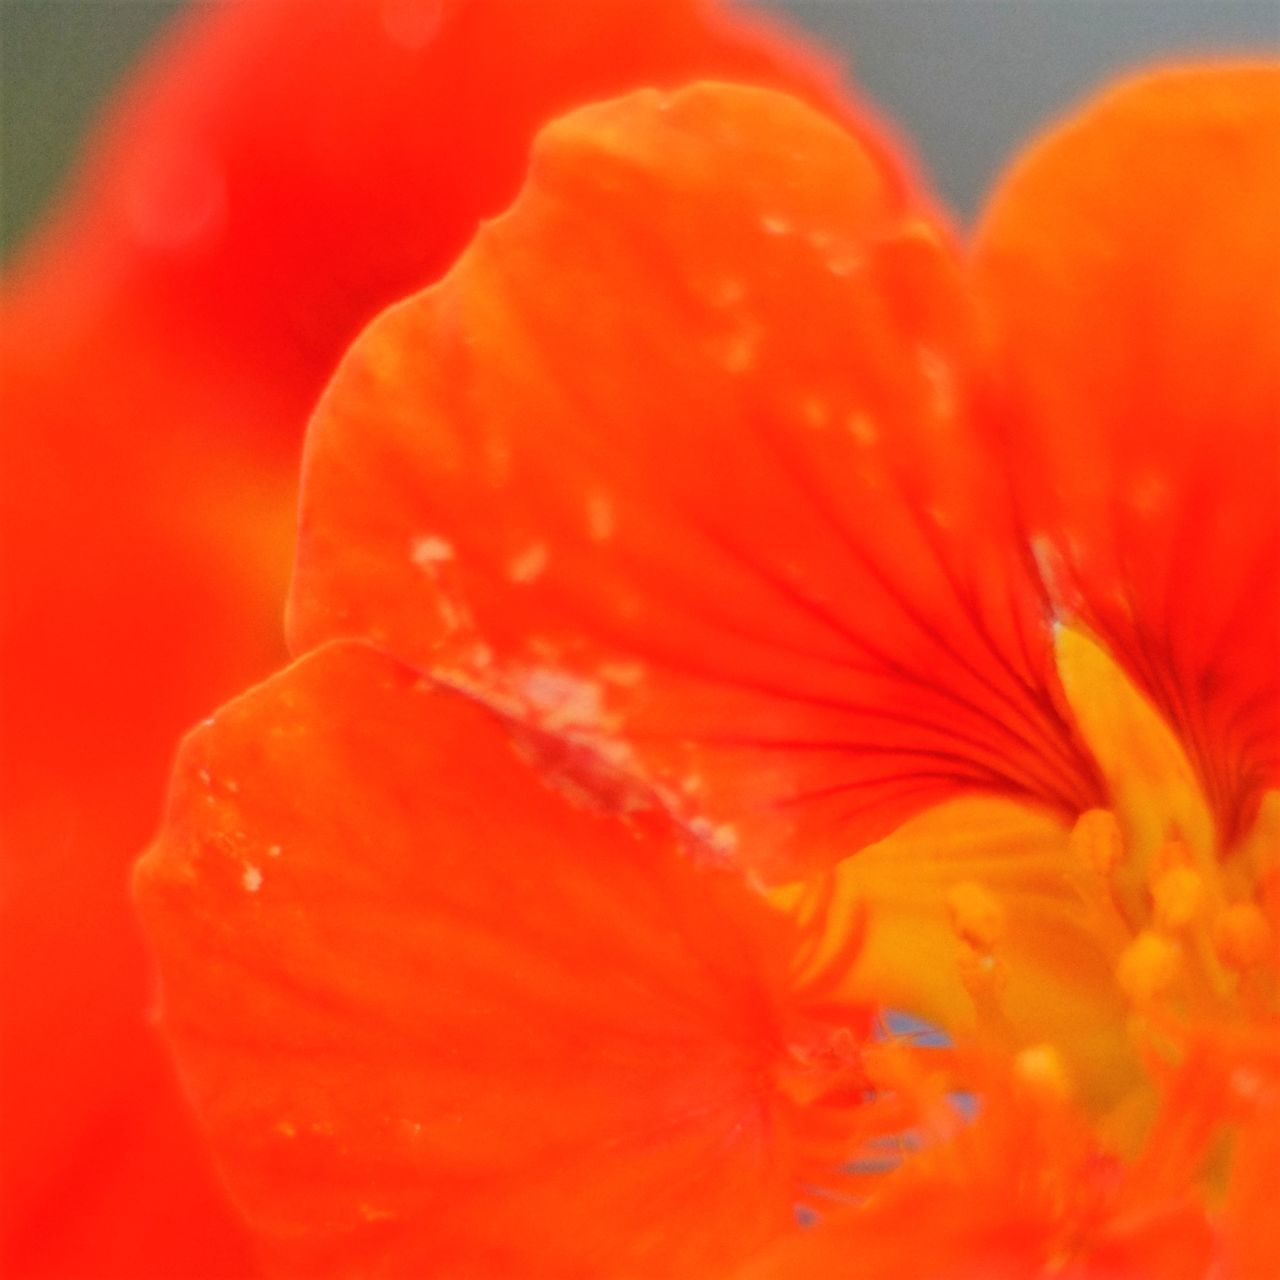 orange color, close-up, flower, petal, freshness, flower head, red, beauty in nature, no people, studio shot, fragility, nature, growth, hibiscus, indoors, day, blood orange